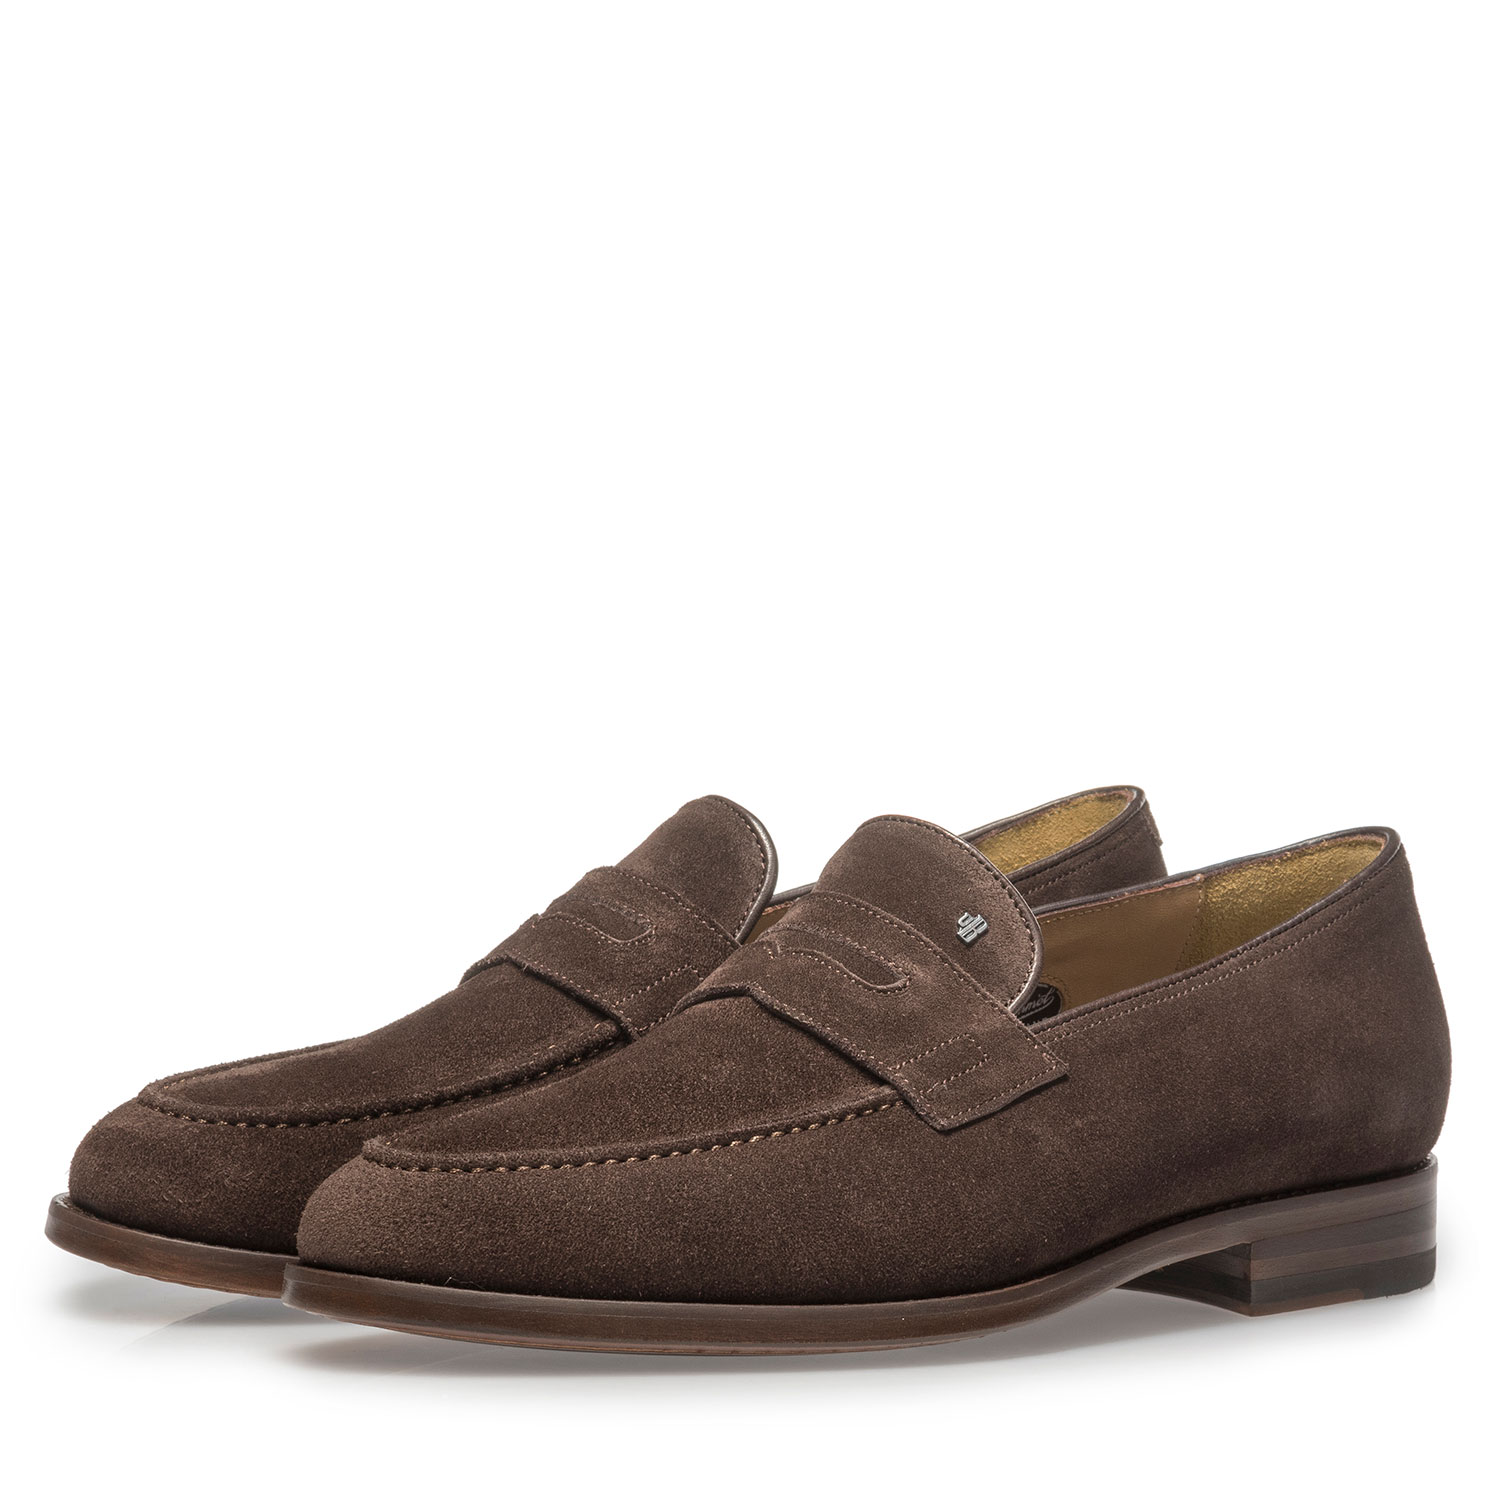 11132/00 - Dark brown suede leather loafer